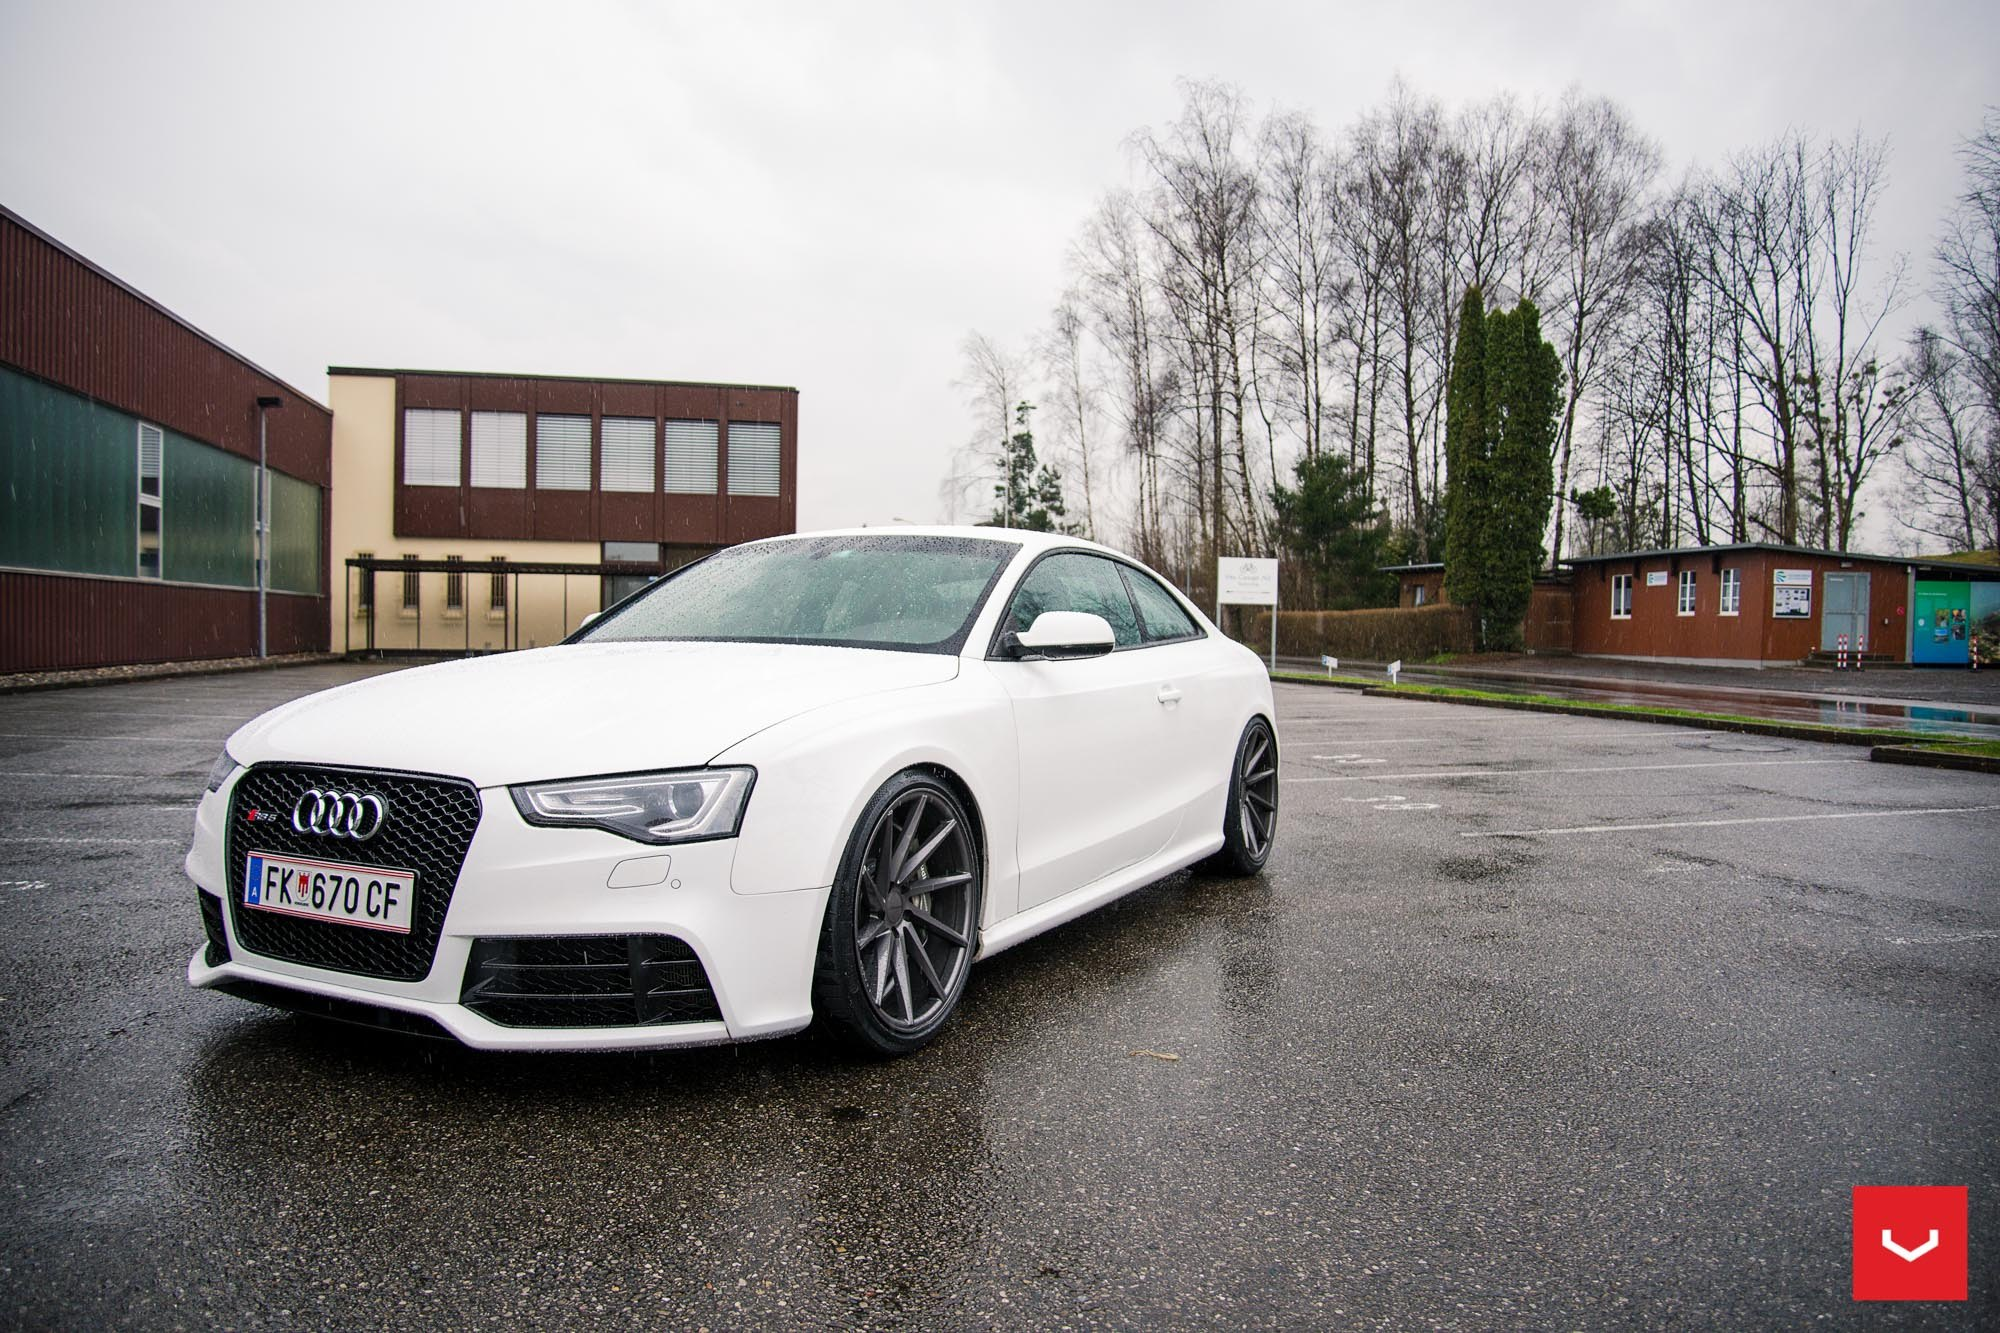 White Audi S5 Fitted With Contrasting Black Custom Add Ons